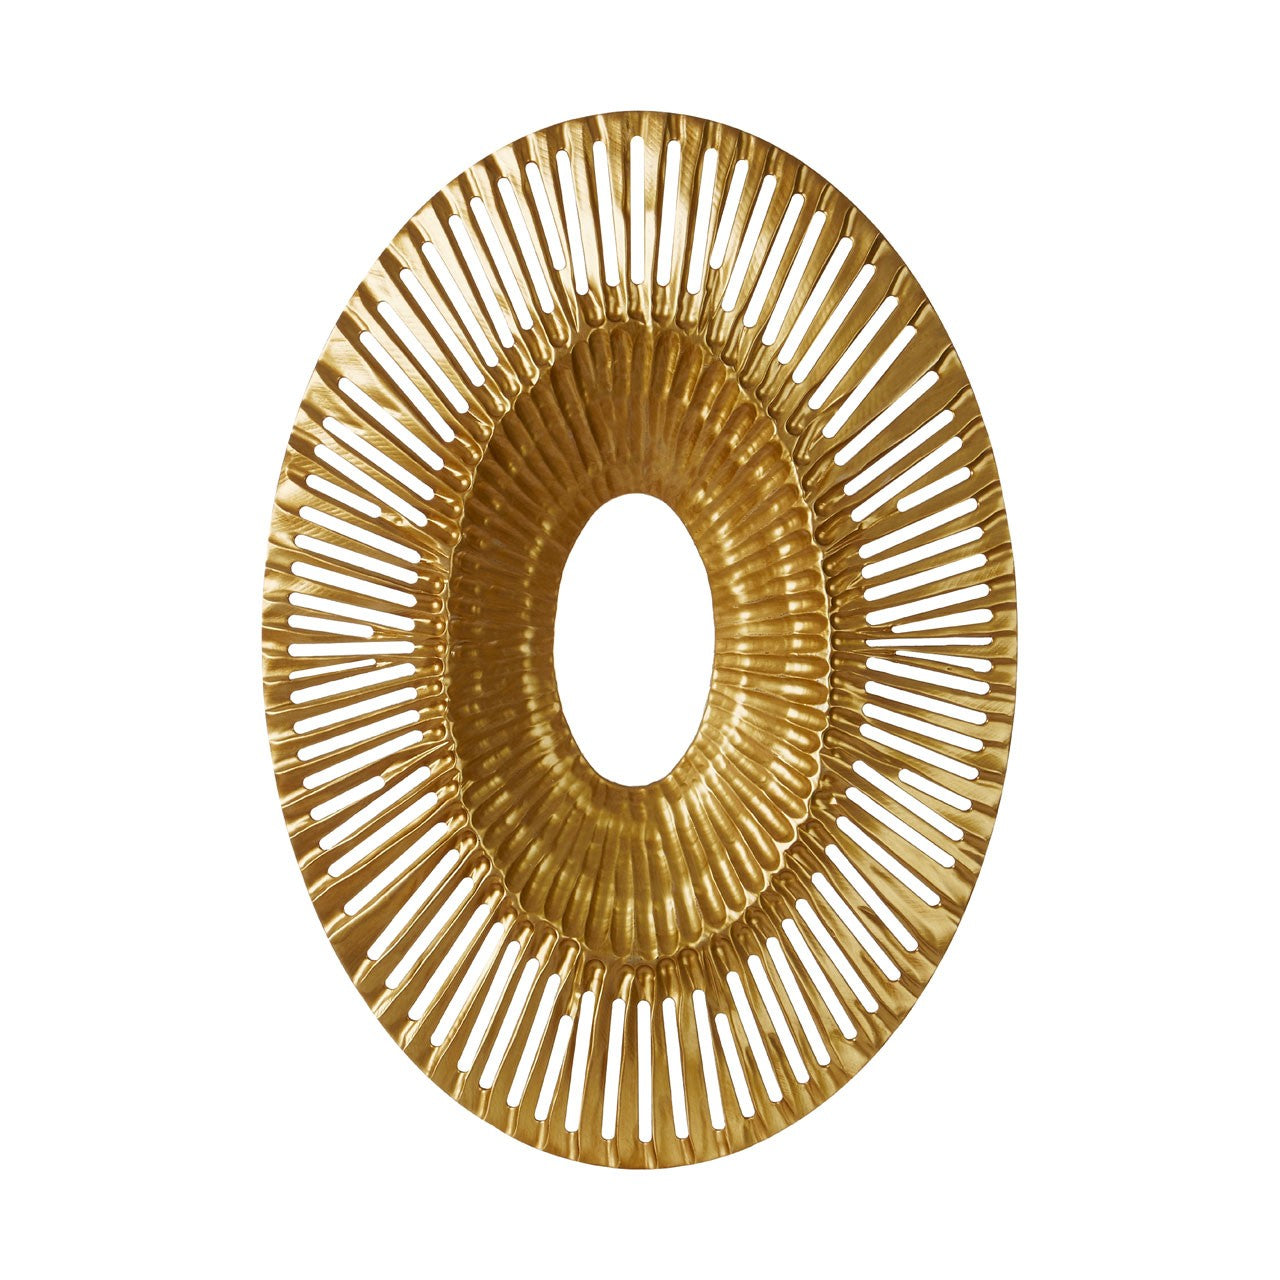 Gold Oval Wall Sculpture